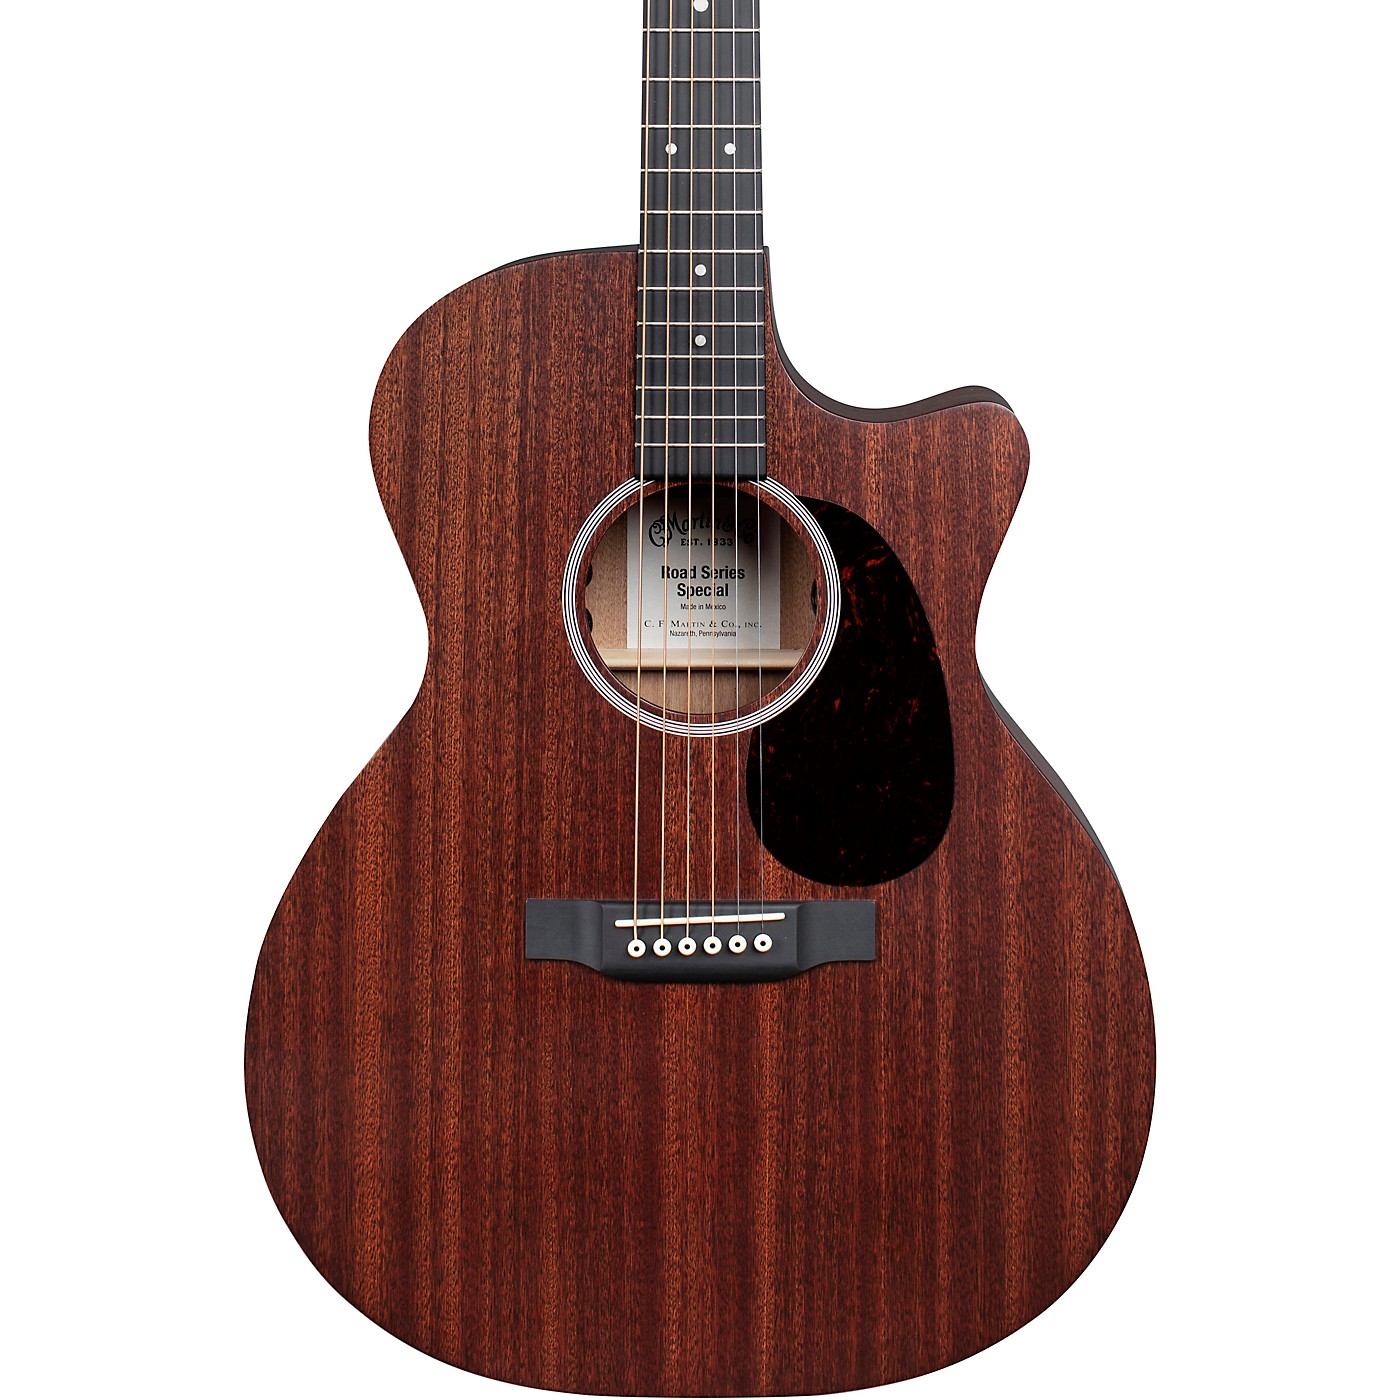 Martin Special GPC Style 10 Road Series Acoustic-Electric Guitar thumbnail